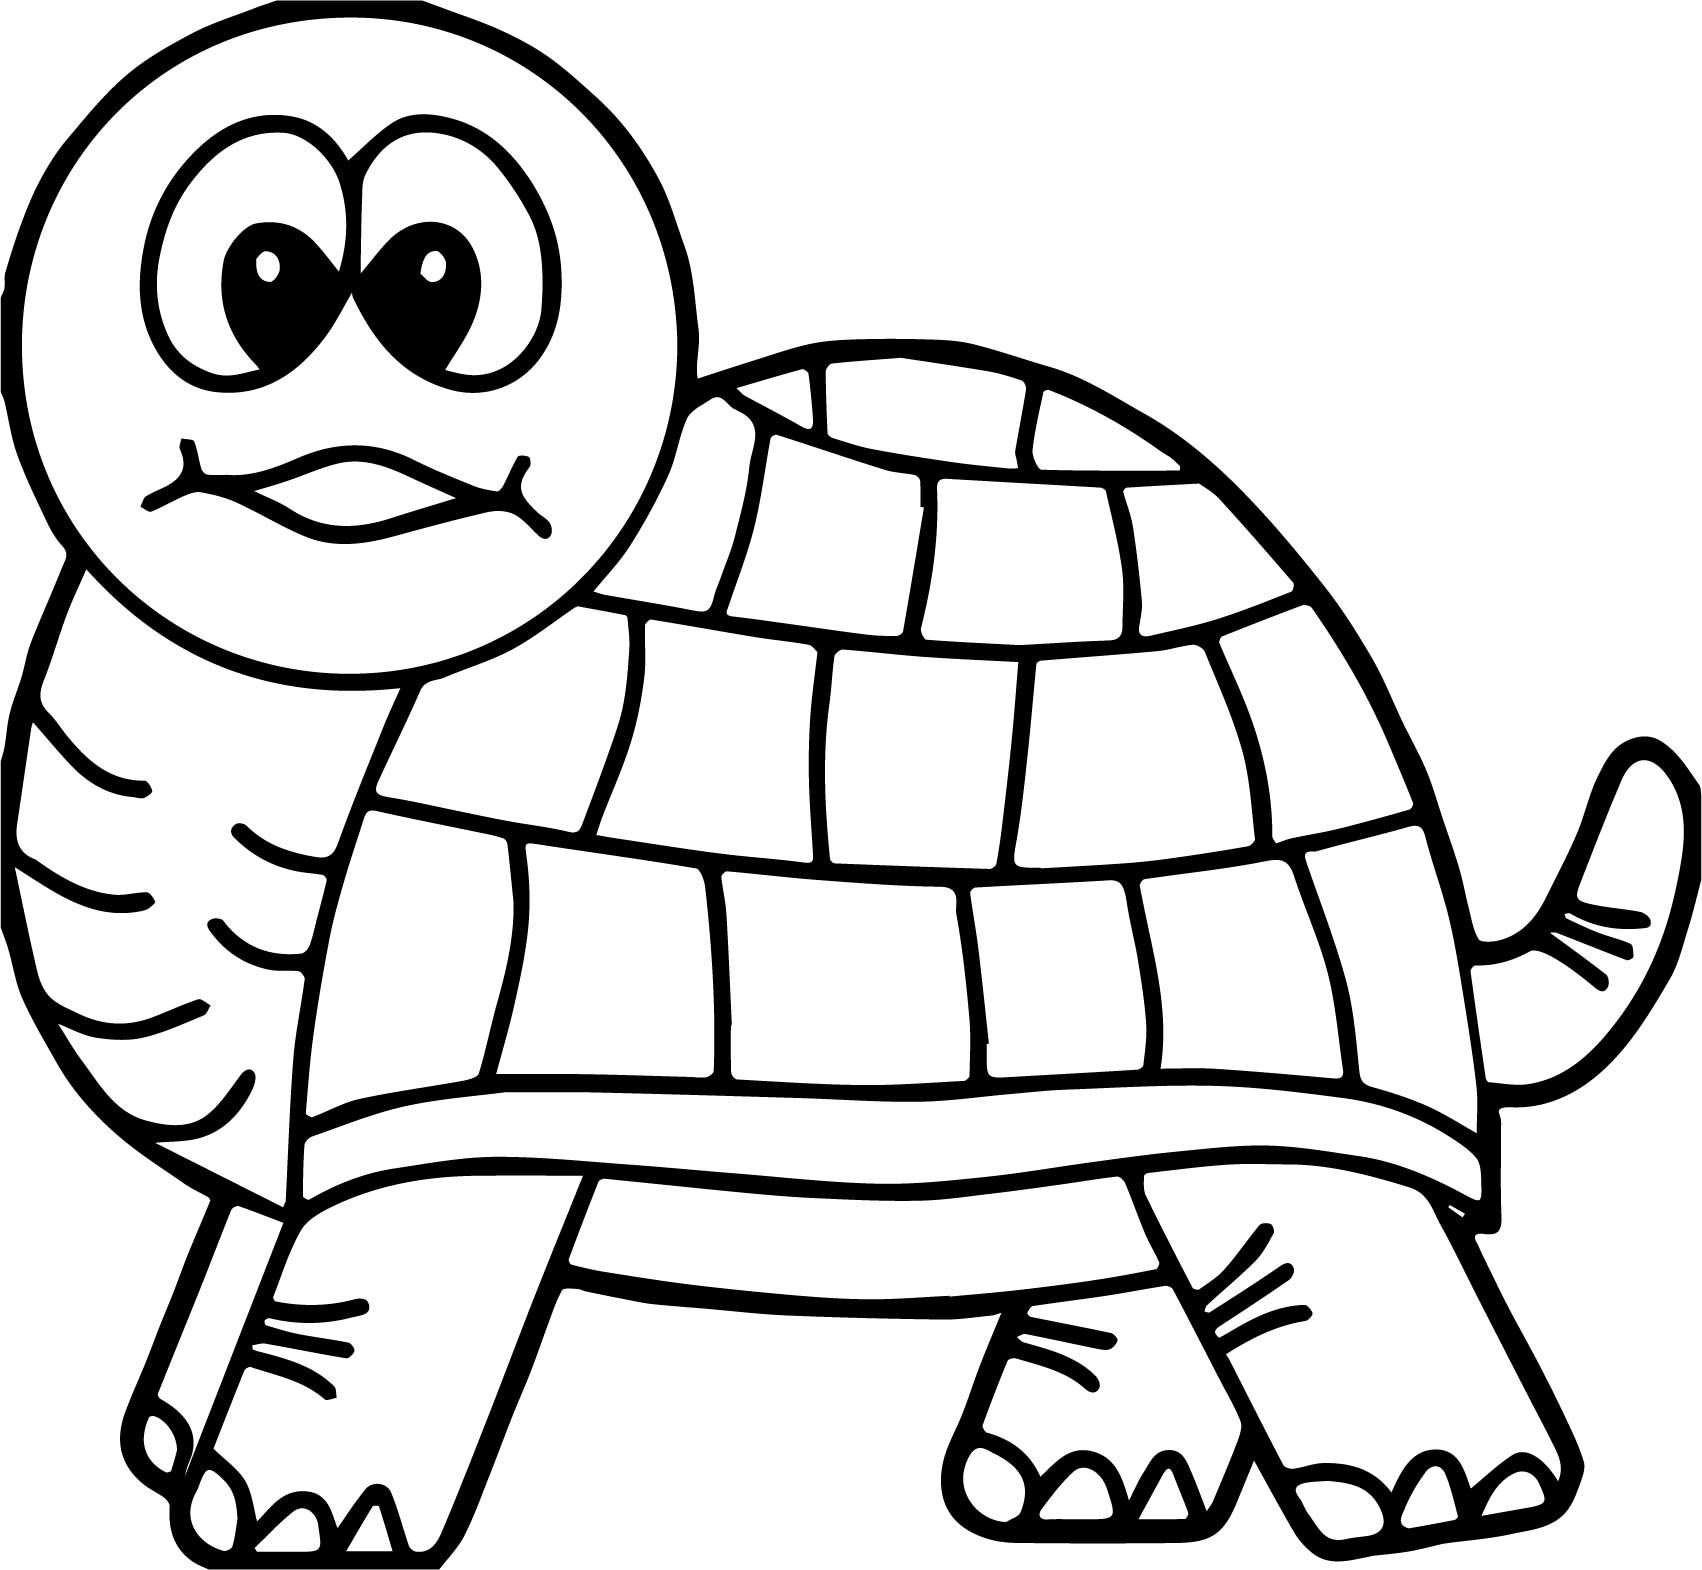 Cool Tortoise Turtle Look Coloring Page